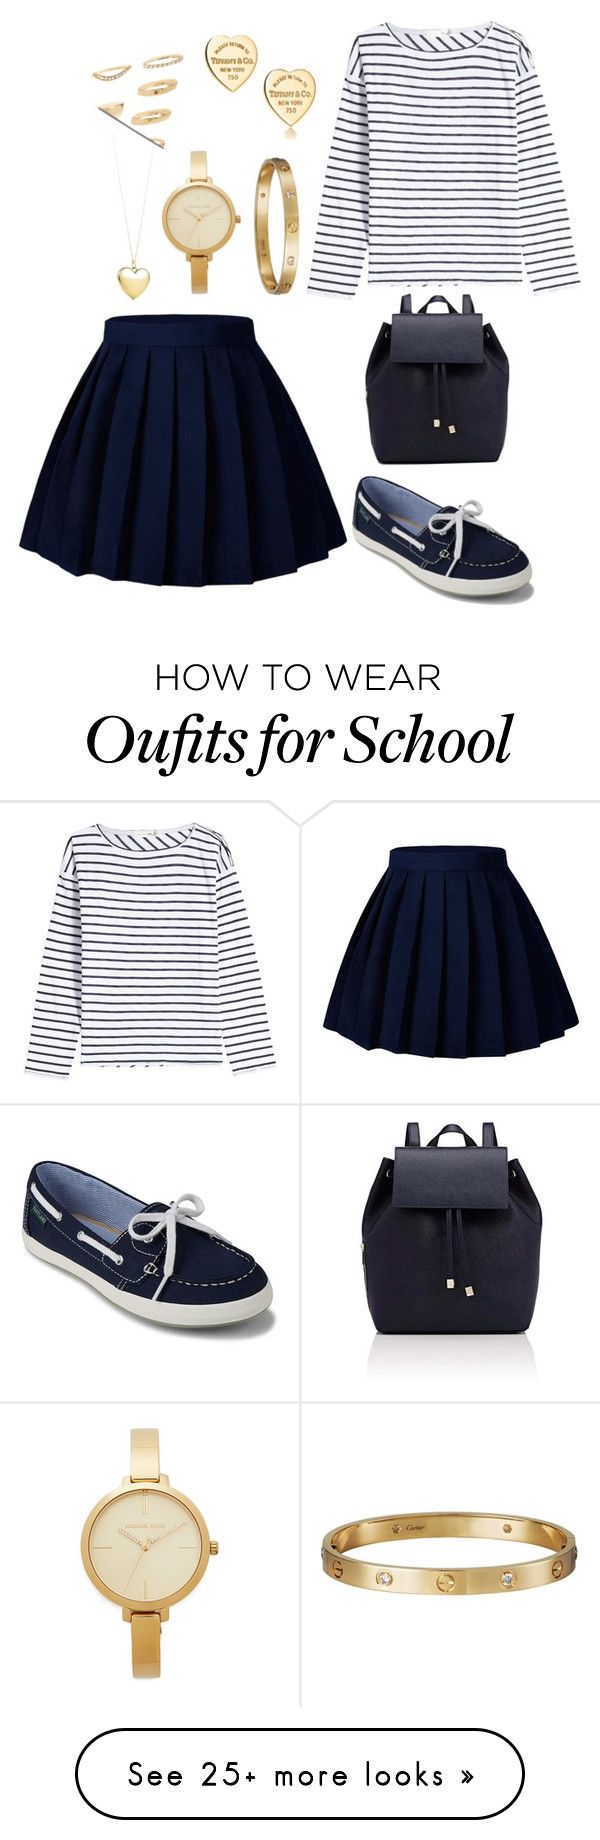 """blue"" by eboony800 on Polyvore featuring rag & bone, Eastland, Barneys New York, Michael Kors, Cartier, Tiffany & Co. and Forever 21"